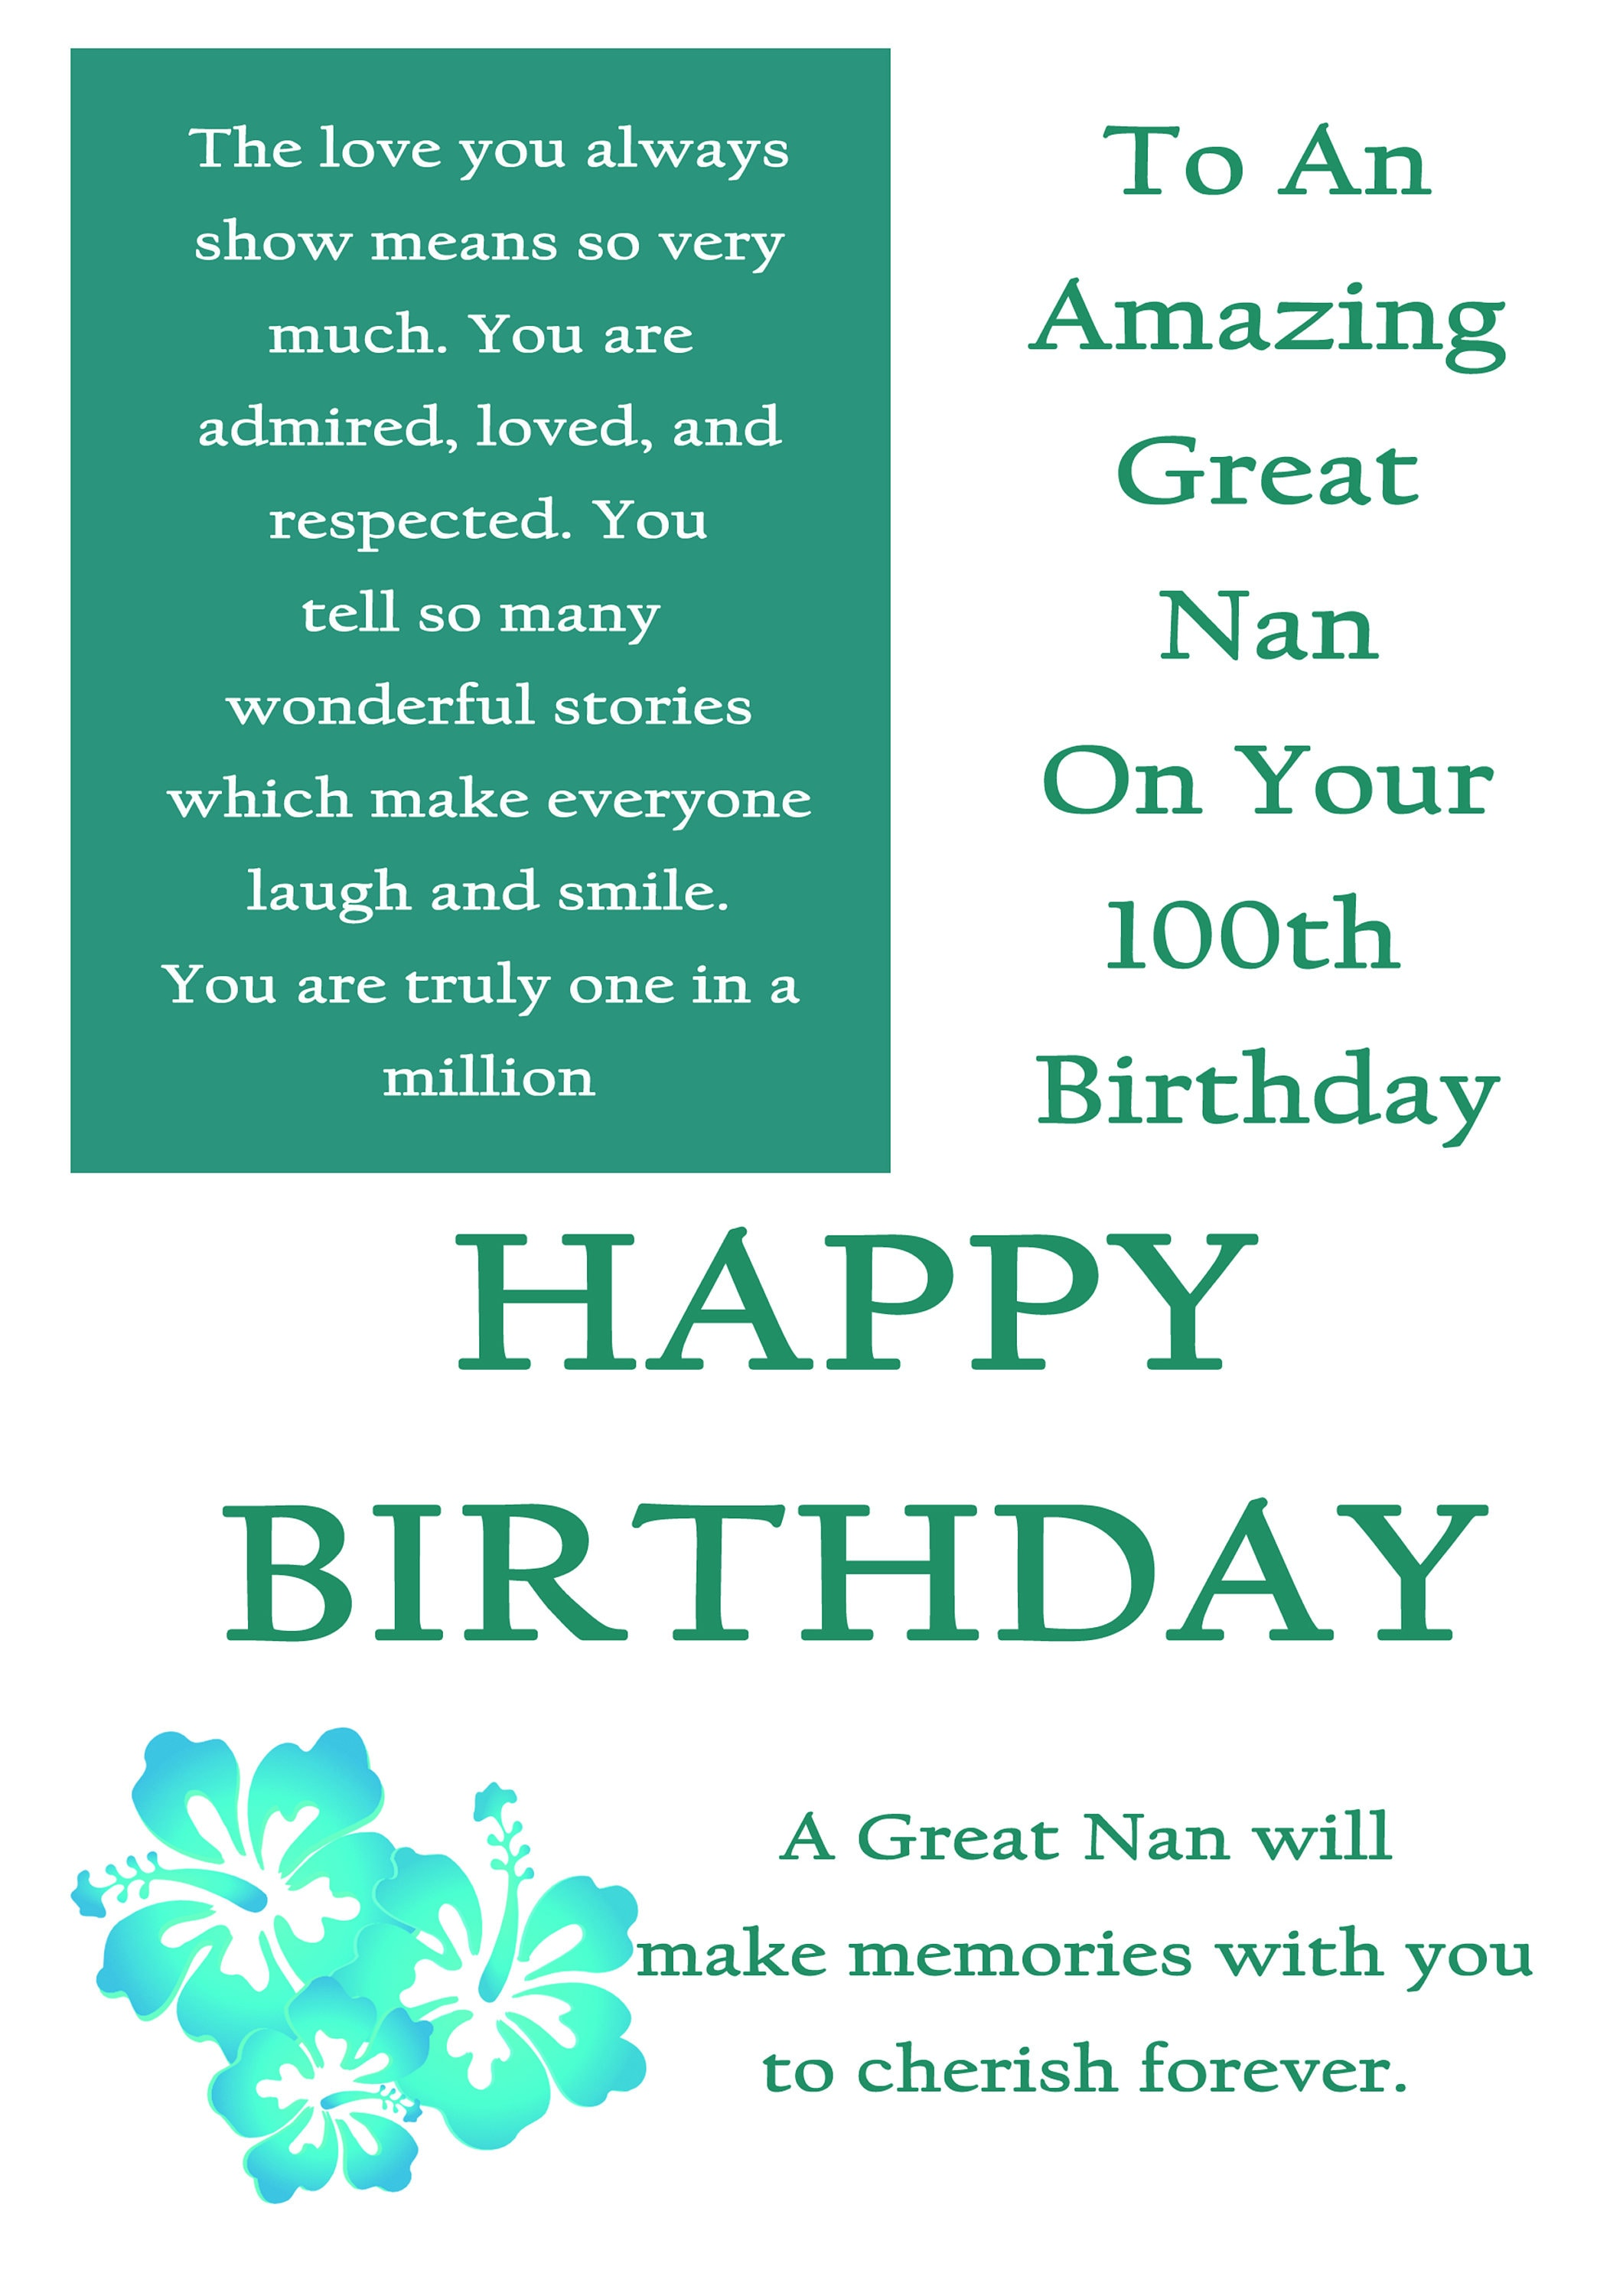 Great Nan 100 Birthday Card With Removable Laminate